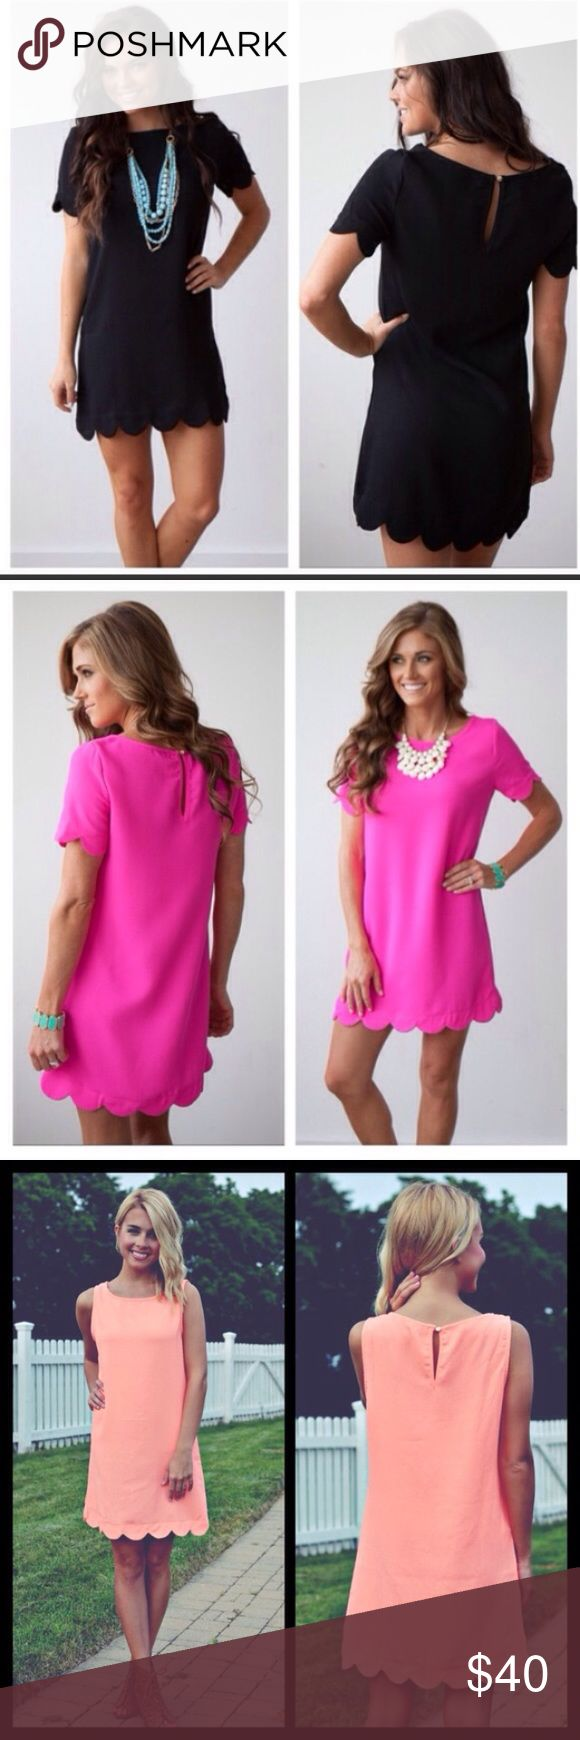 ❗️RESTOCK❗️ Summer Perfect Scalloped Mini Dress Brand new! Available in S (2-4) M (6-8) and L (10-12). In black and pink short sleeves or neon coral sleeveless. So essential for those summer parties and BBQ's! Sizes left: hot pink with sleeves: S M L. Sleeveless hot pink: S or L. Sleeveless coral: M or L. Black with sleeves: S M L. Dresses Mini